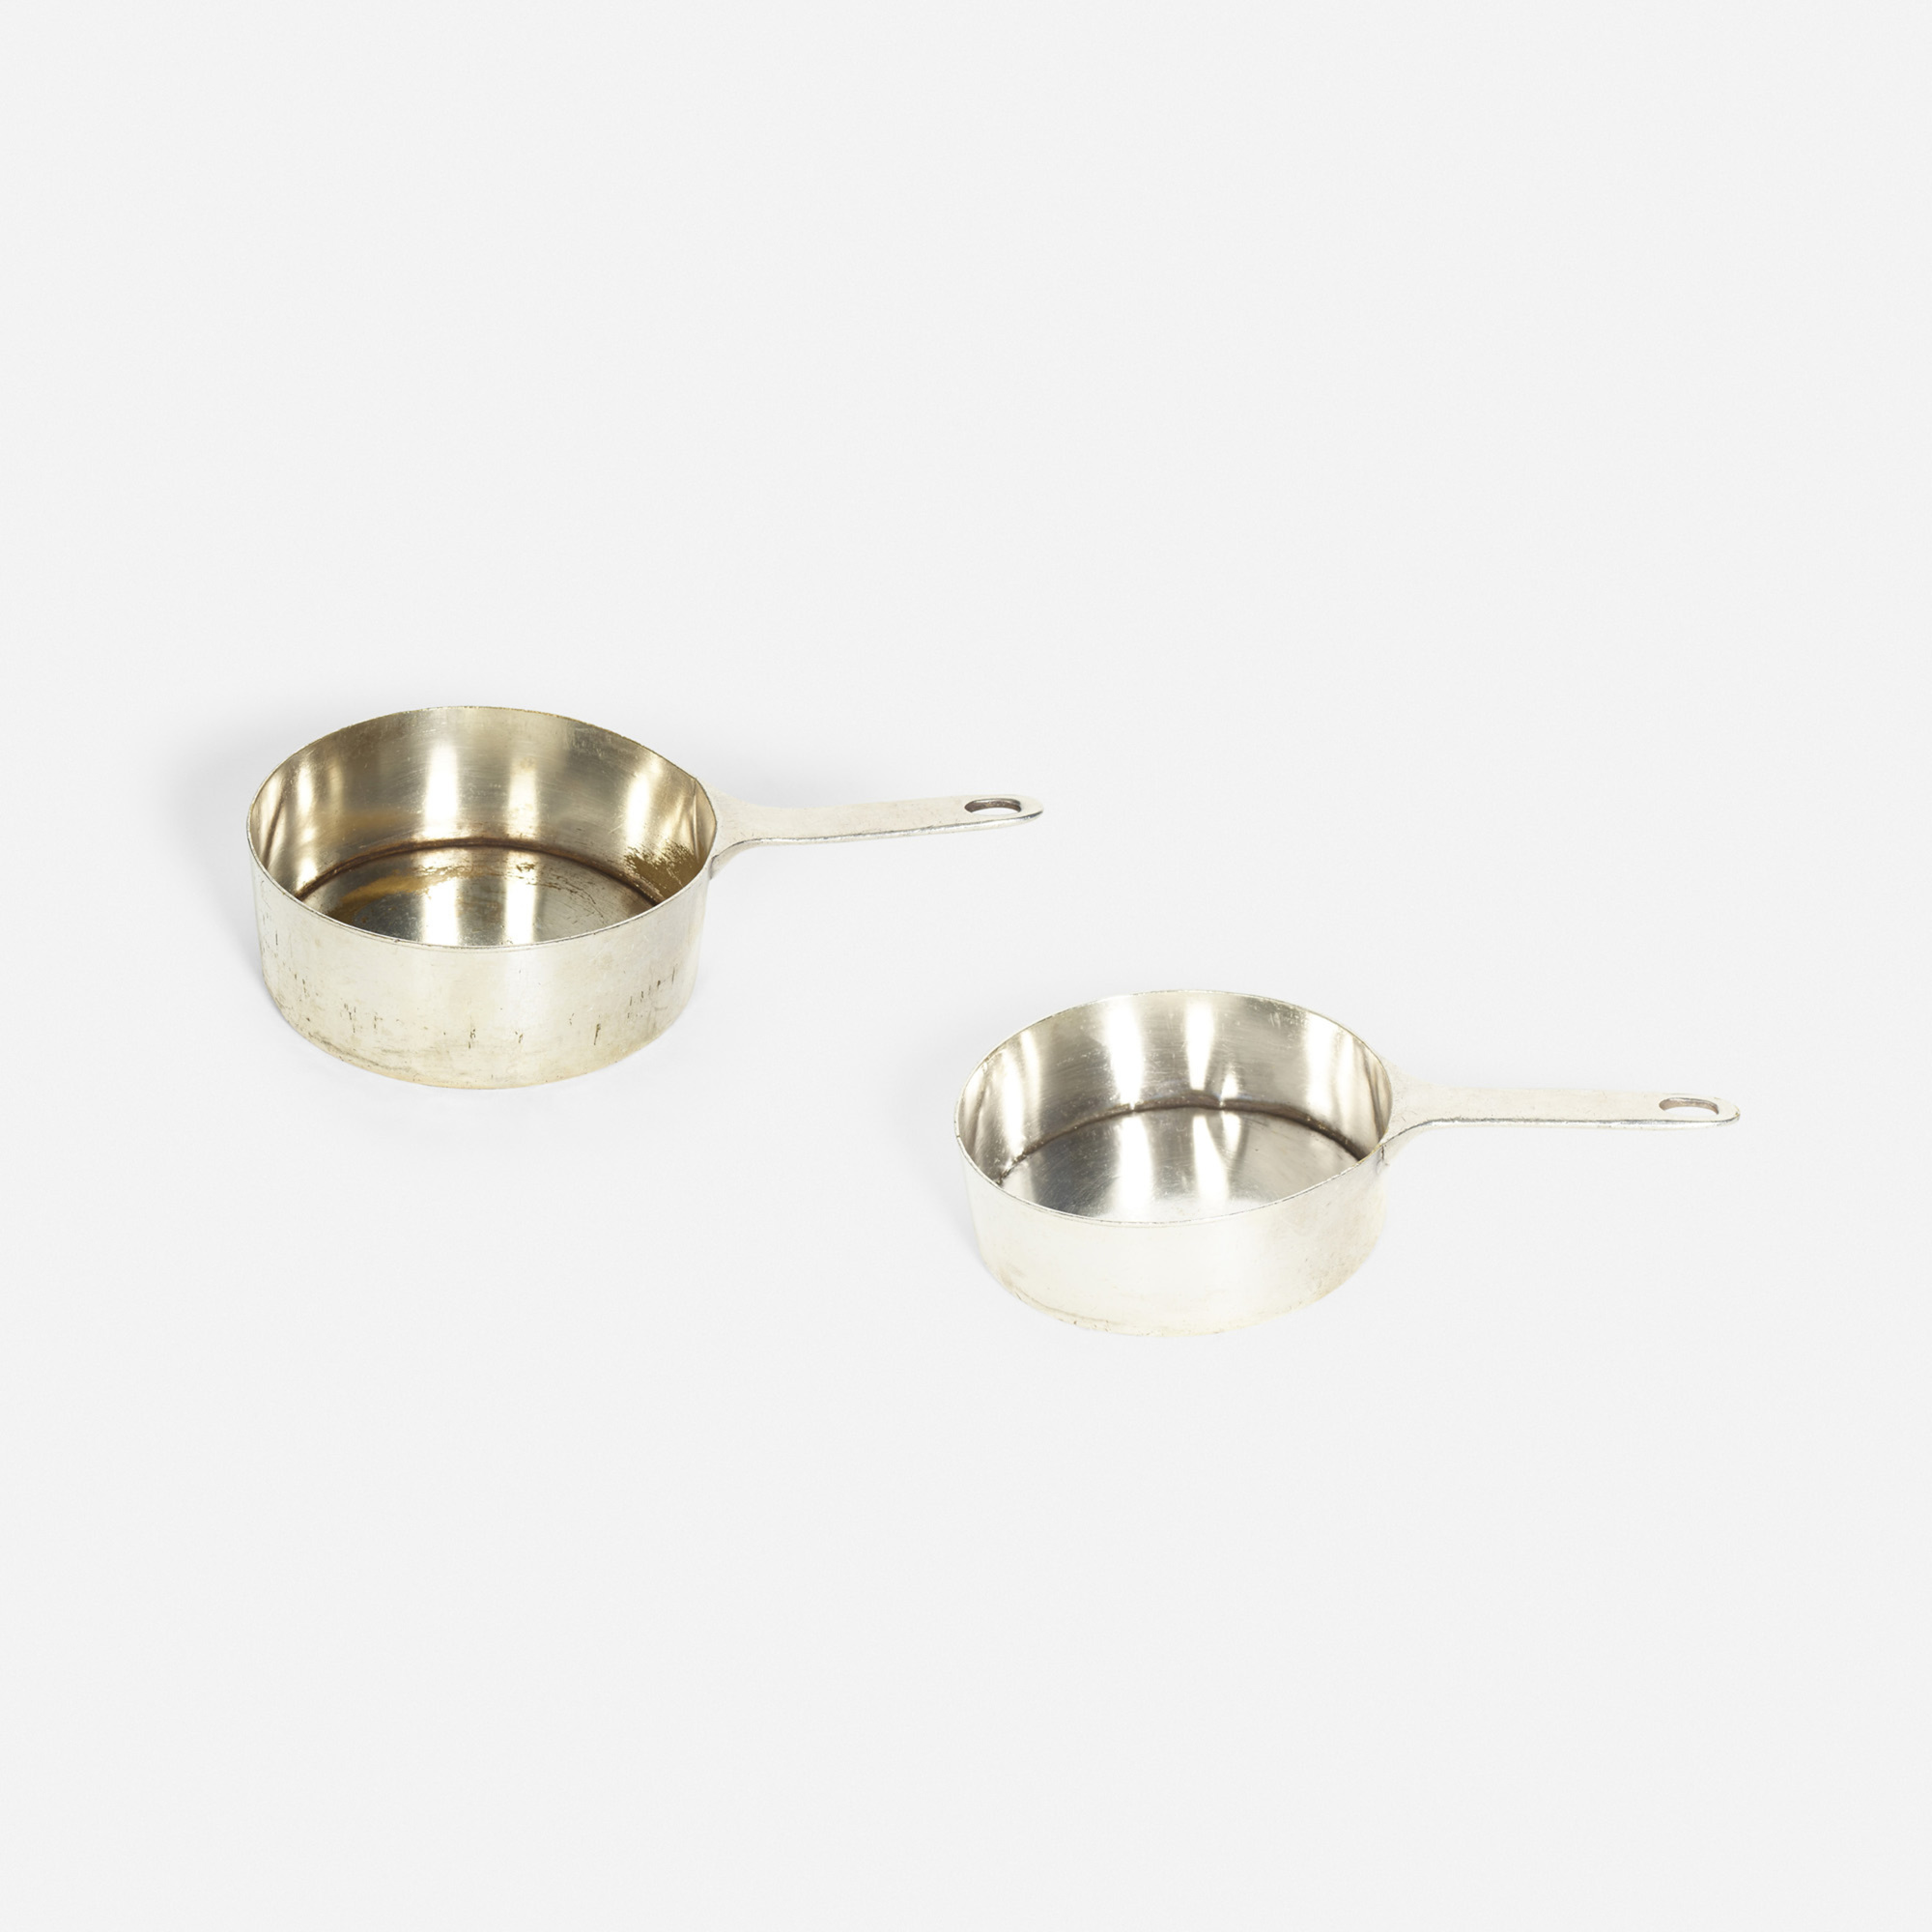 868: Garth and Ada Louise Huxtable / sauce pots from the kitchen of The Four Seasons, set of two (1 of 1)